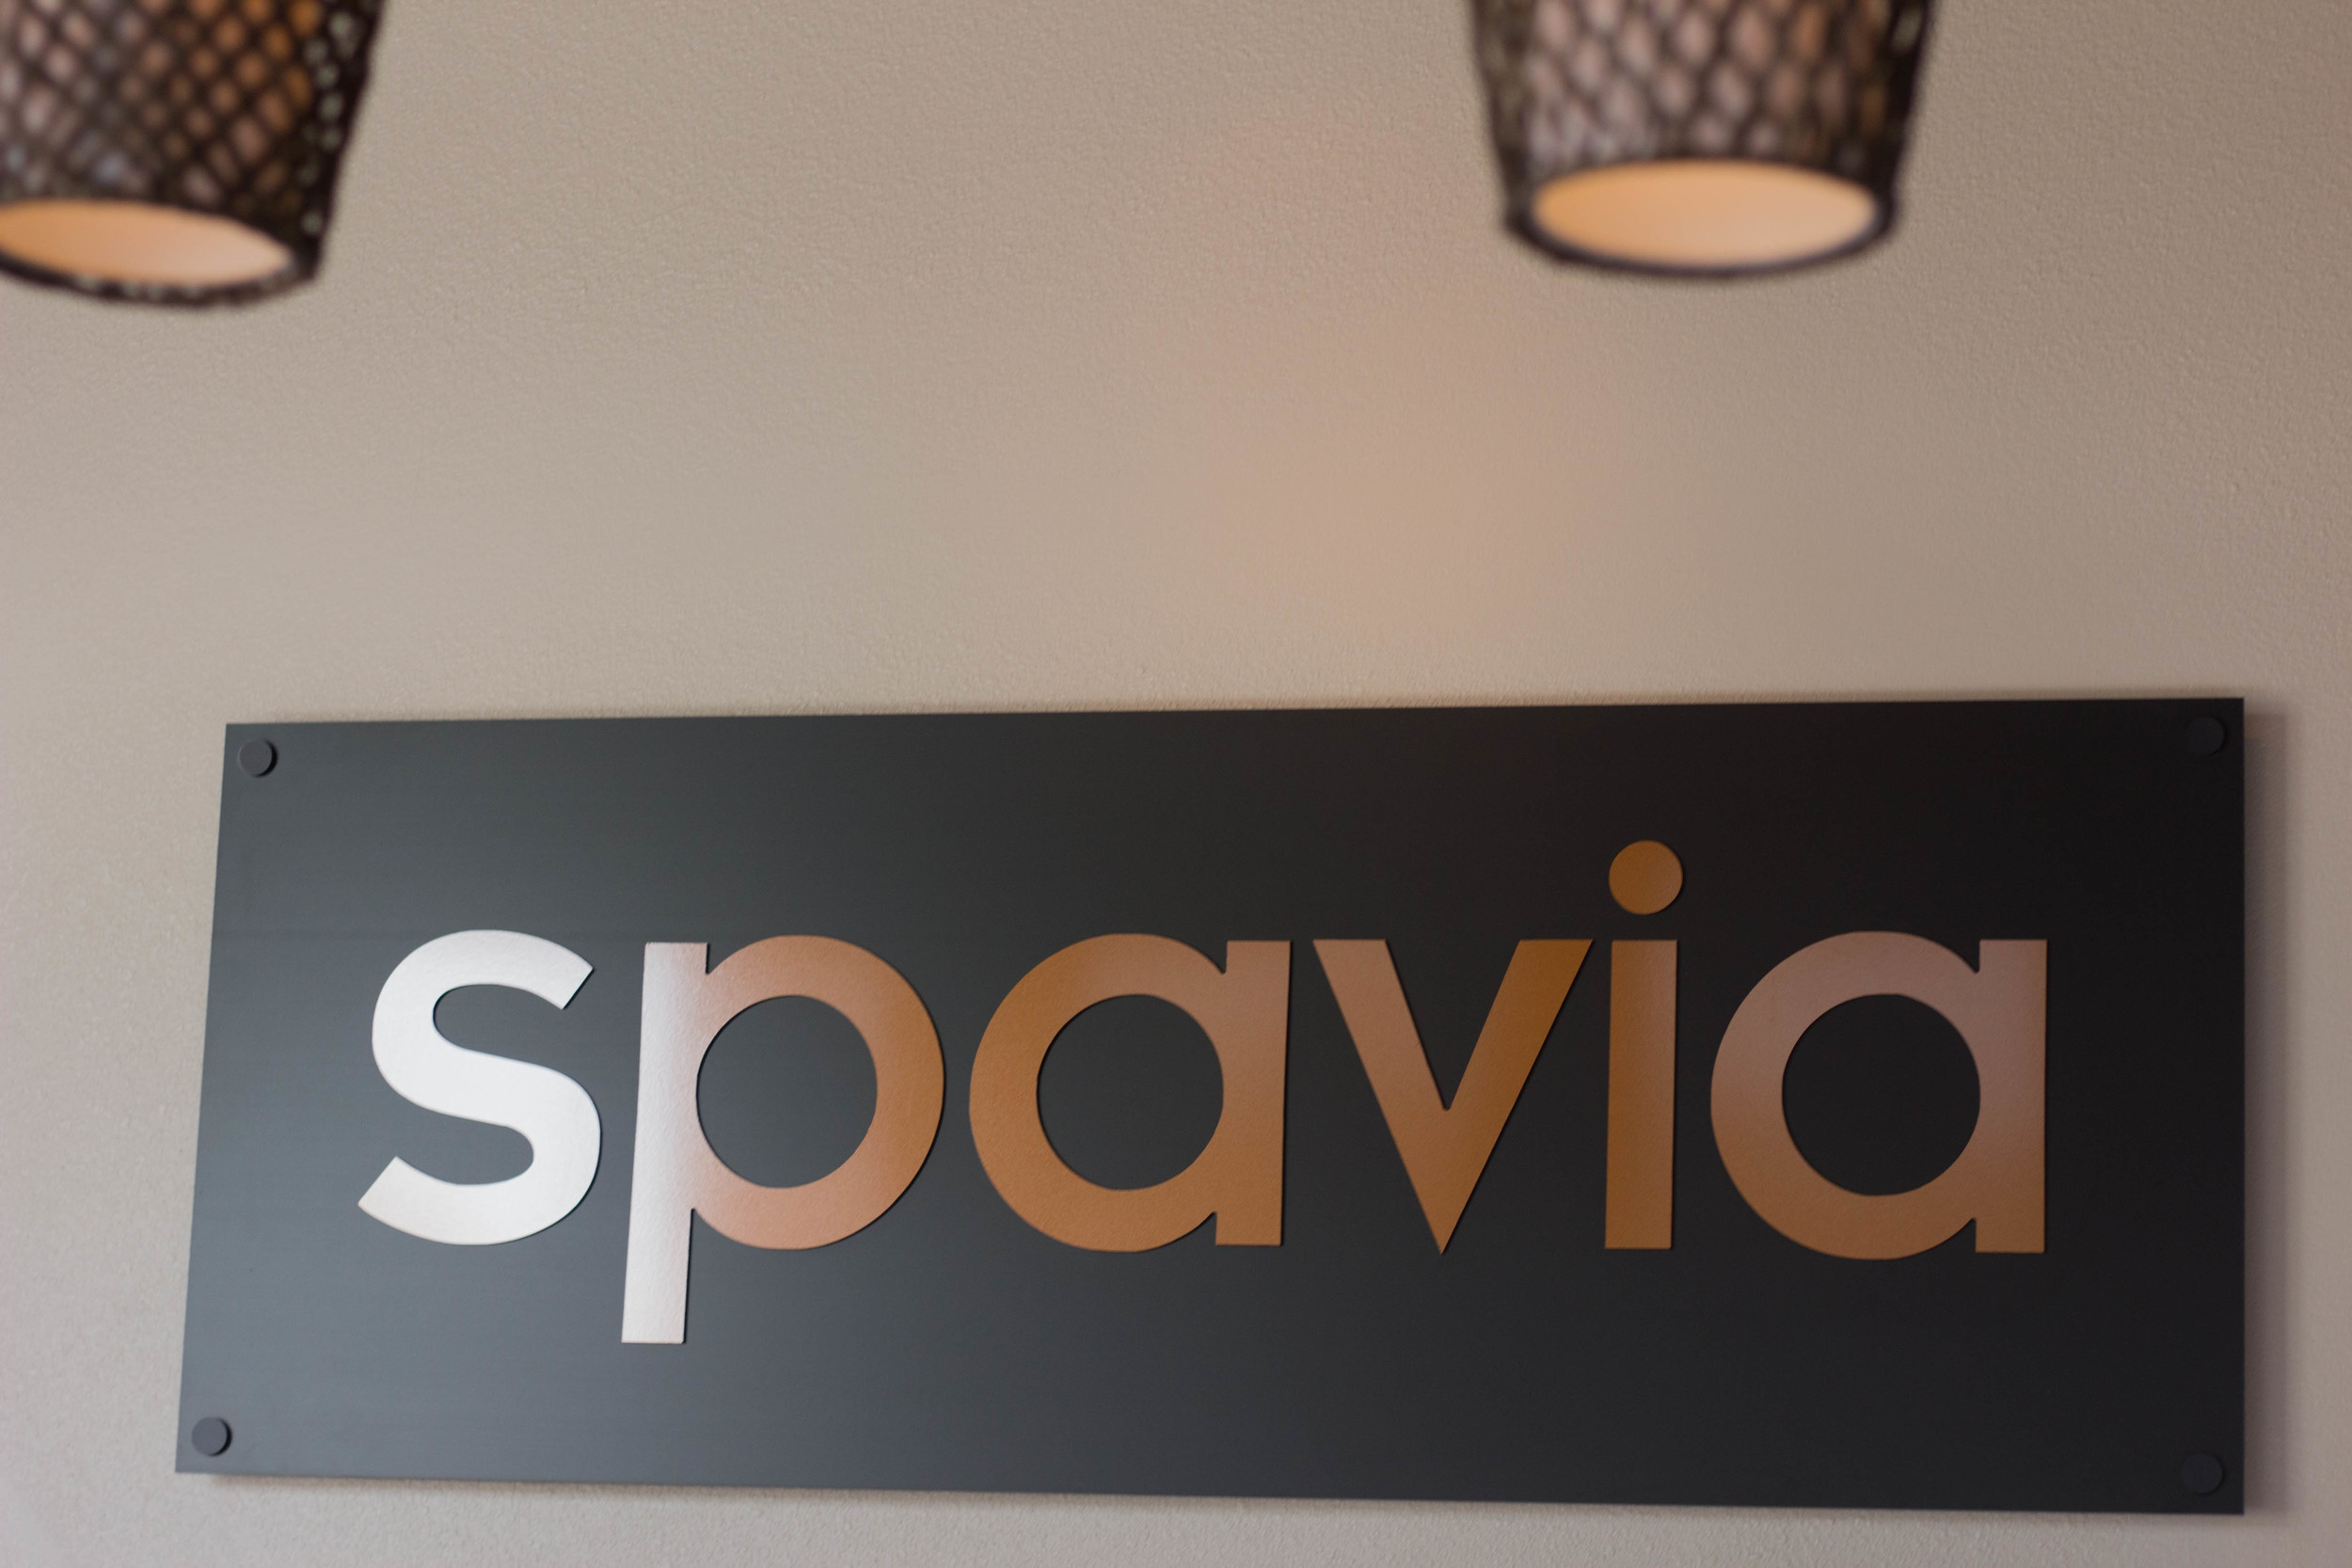 spavia west plano, spa day, massage, dallas